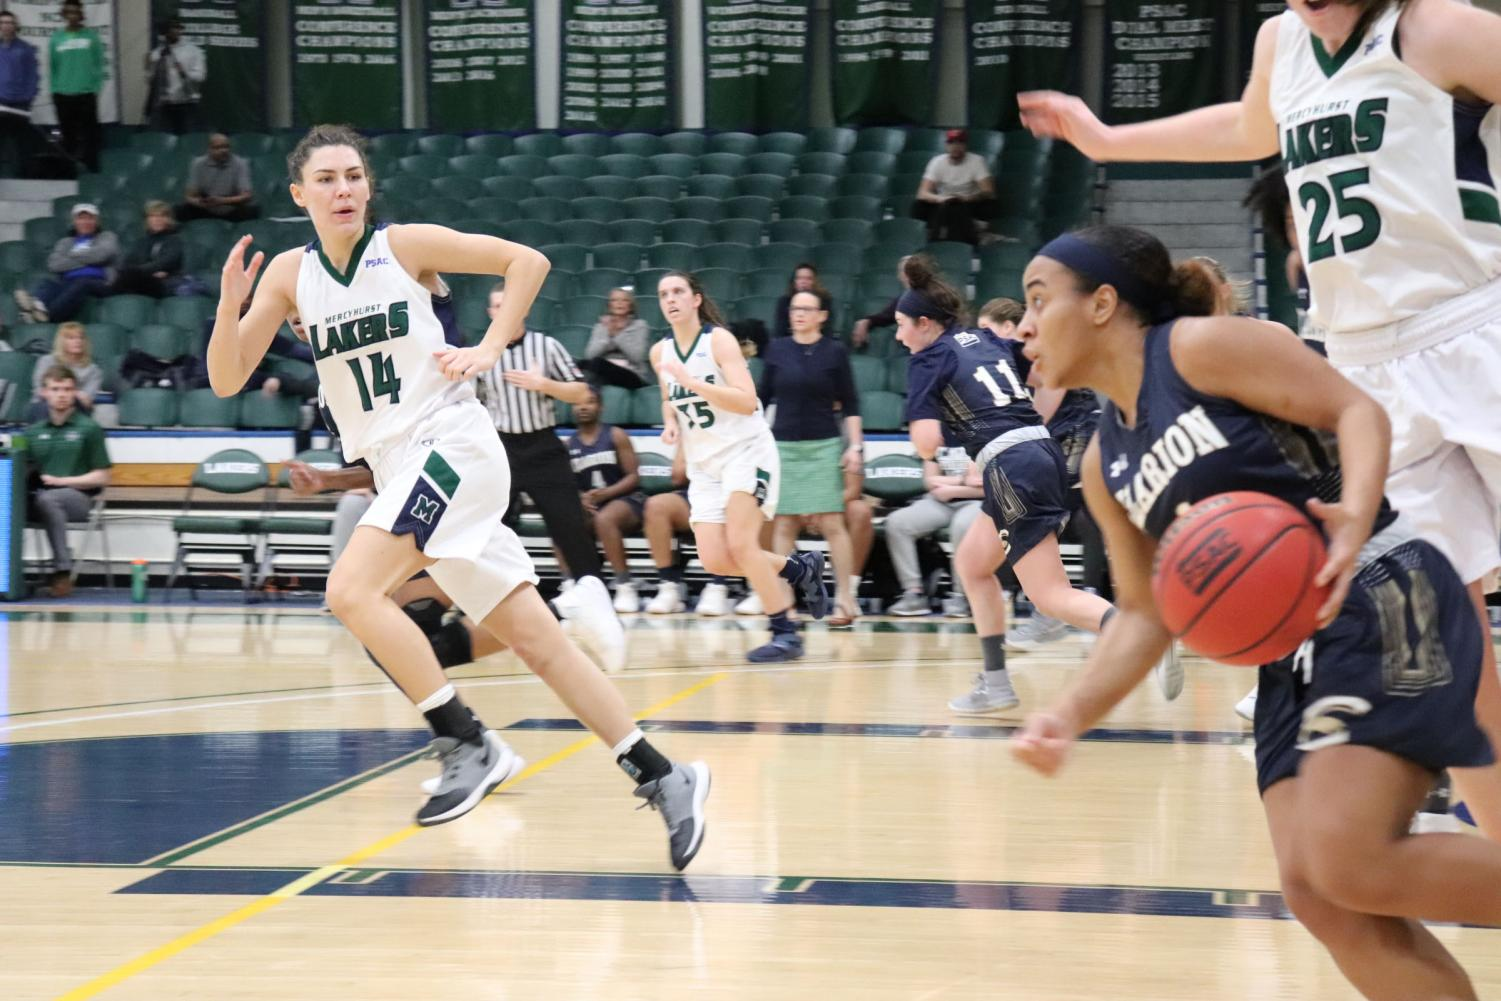 The Lakers' No. 14 Lauren Lapertosa races from the paint as a Clarion Golden Eagles player gets ready to dribble down court.